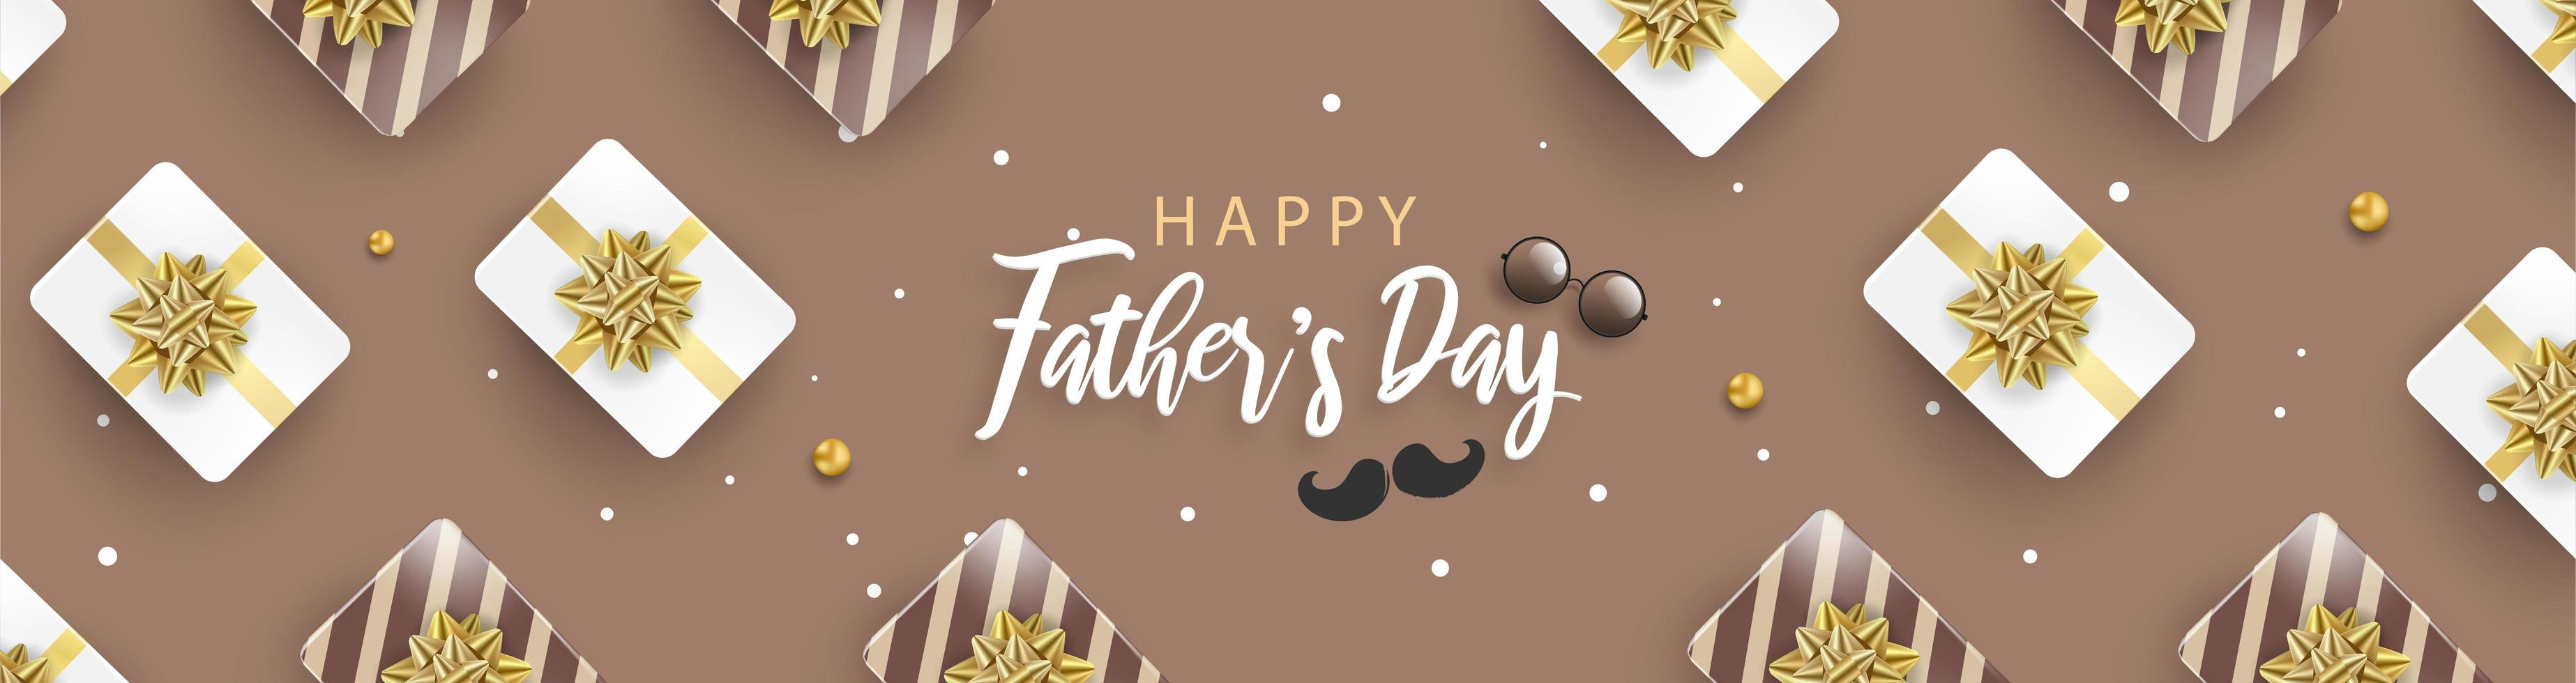 Happy Father's Day poster brown banner vector